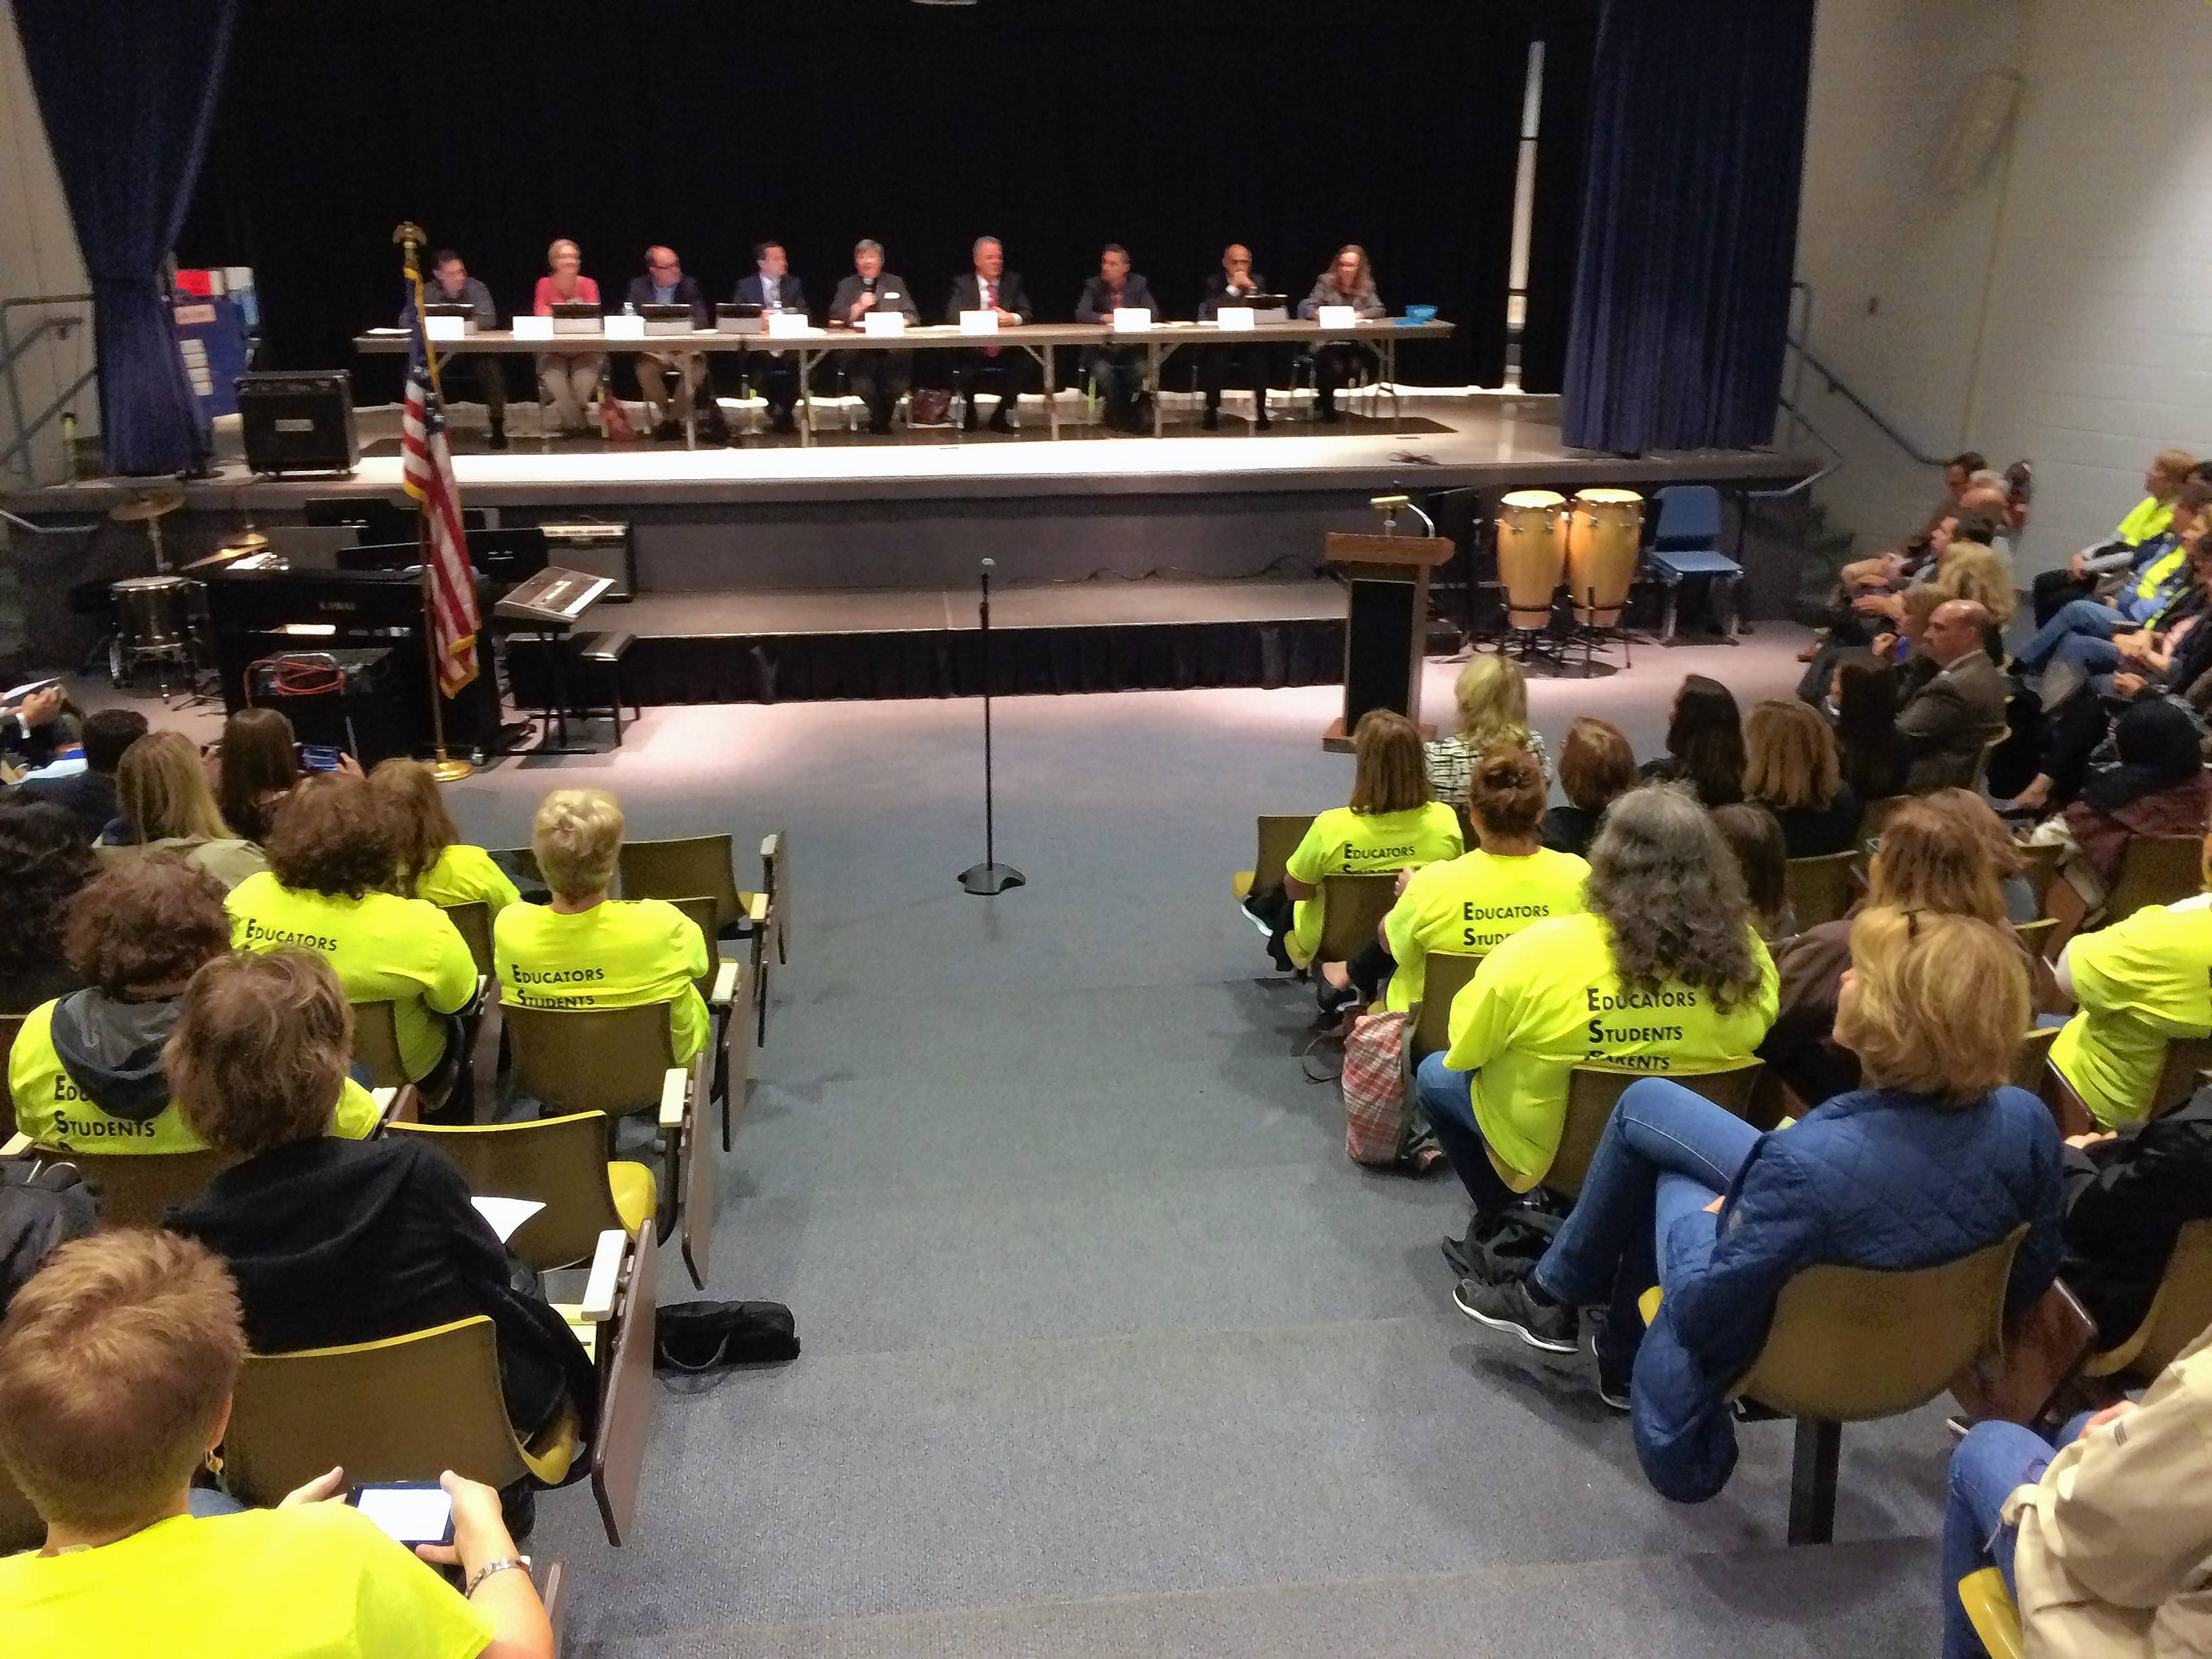 About 300 members of the Educational Support Personnel Association union and their supporters packed the Walter R. Sundling Junior High School theater in Palatine for Wednesday night's Palatine Township Elementary District 15 board meeting. The union members have been without a contract since June 30 and may strike as early as Monday.